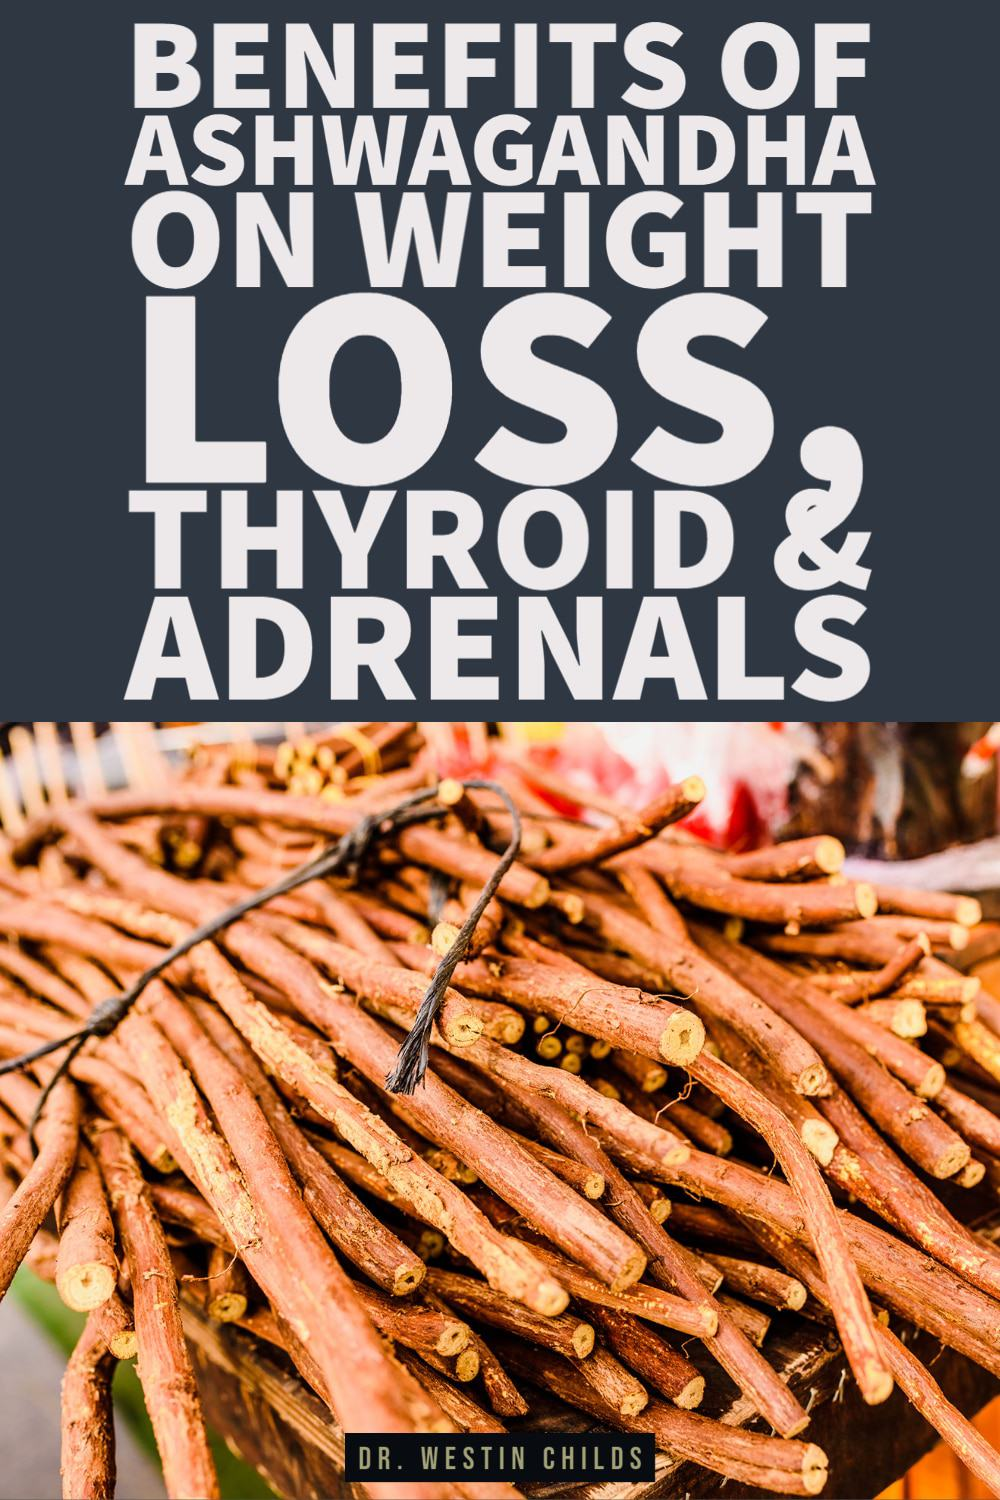 using ashwagandha for thyroid, weight loss, and adrenal support